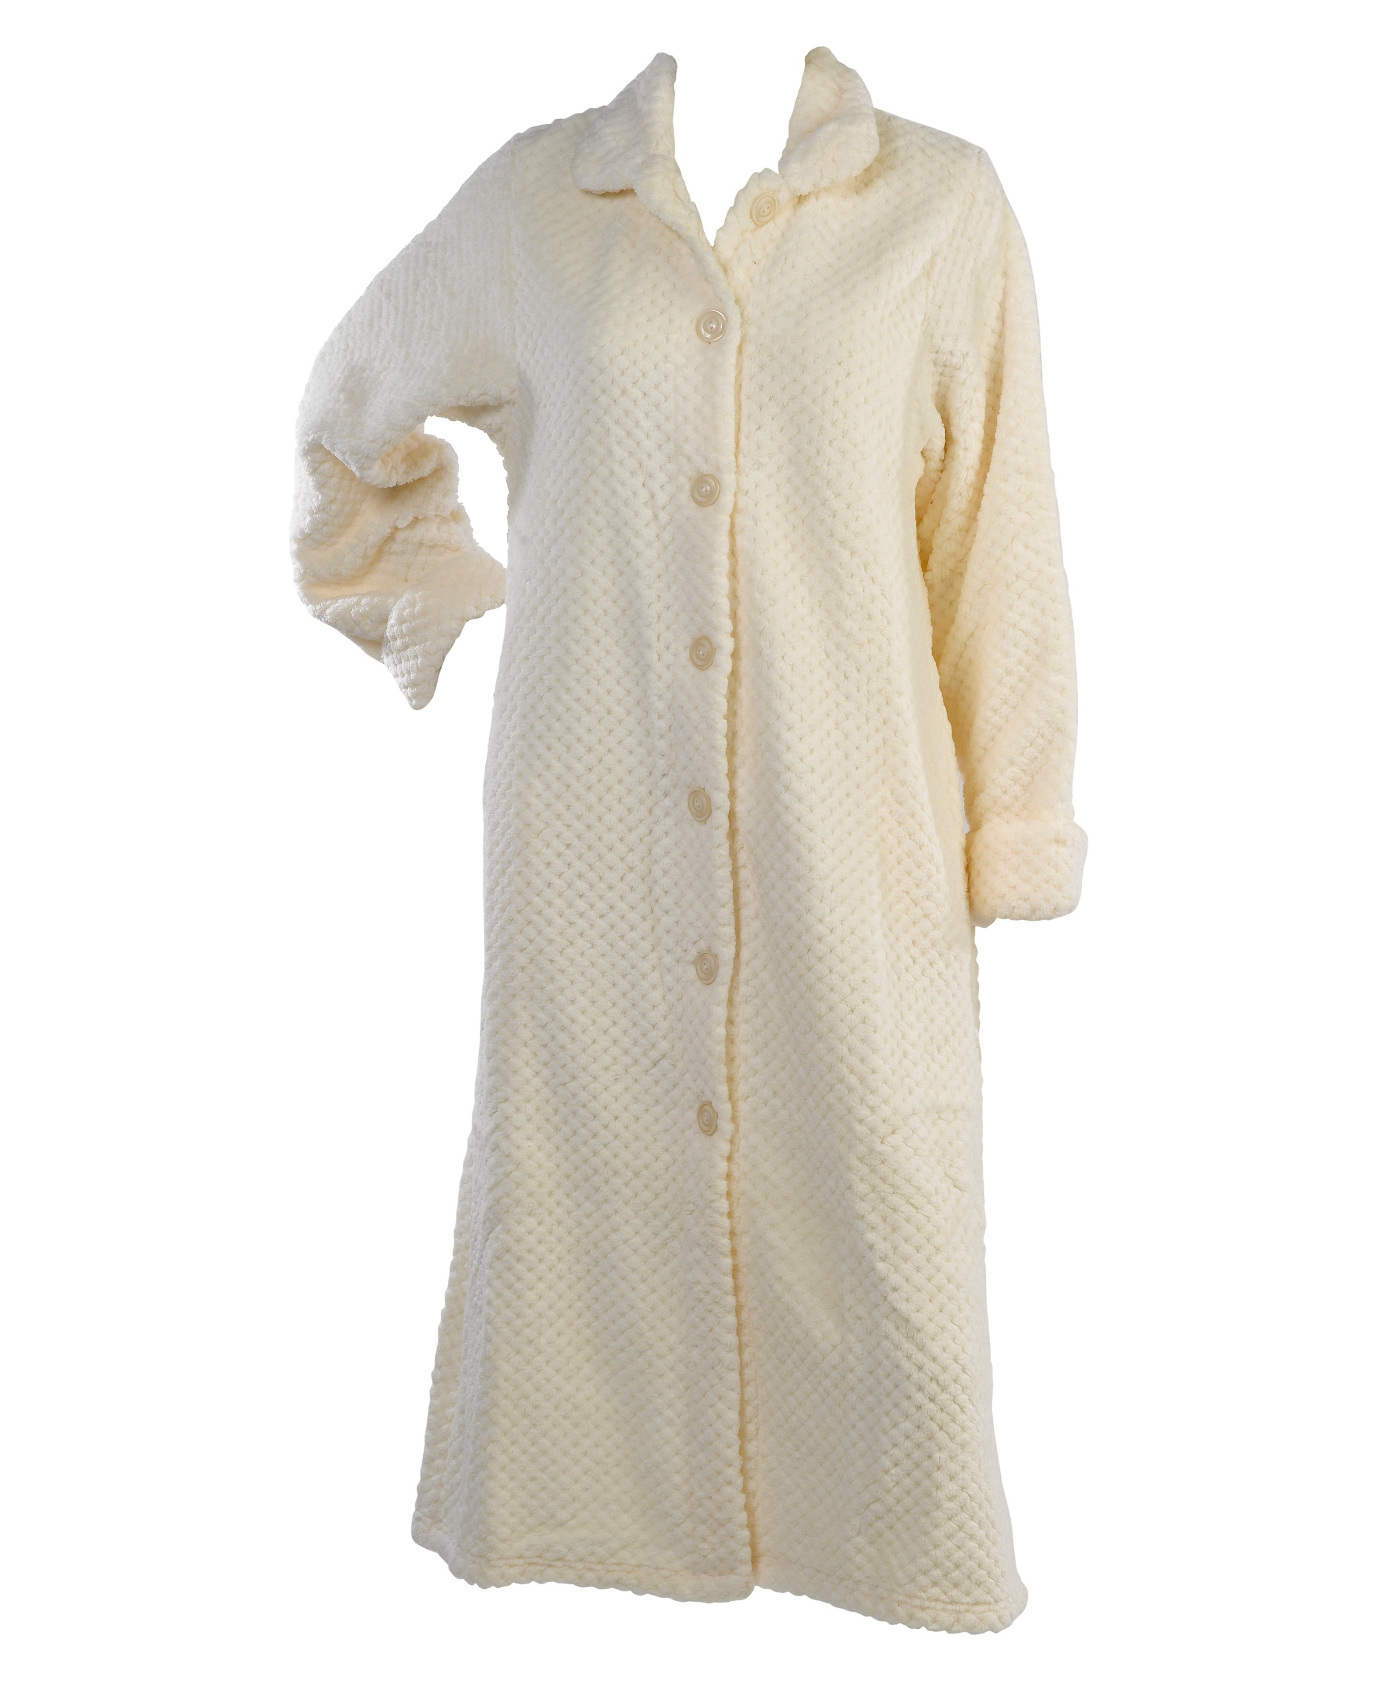 de98a91101 Soft Waffle Fleece Bed Jacket or Dressing Gown Robe Ladies ...